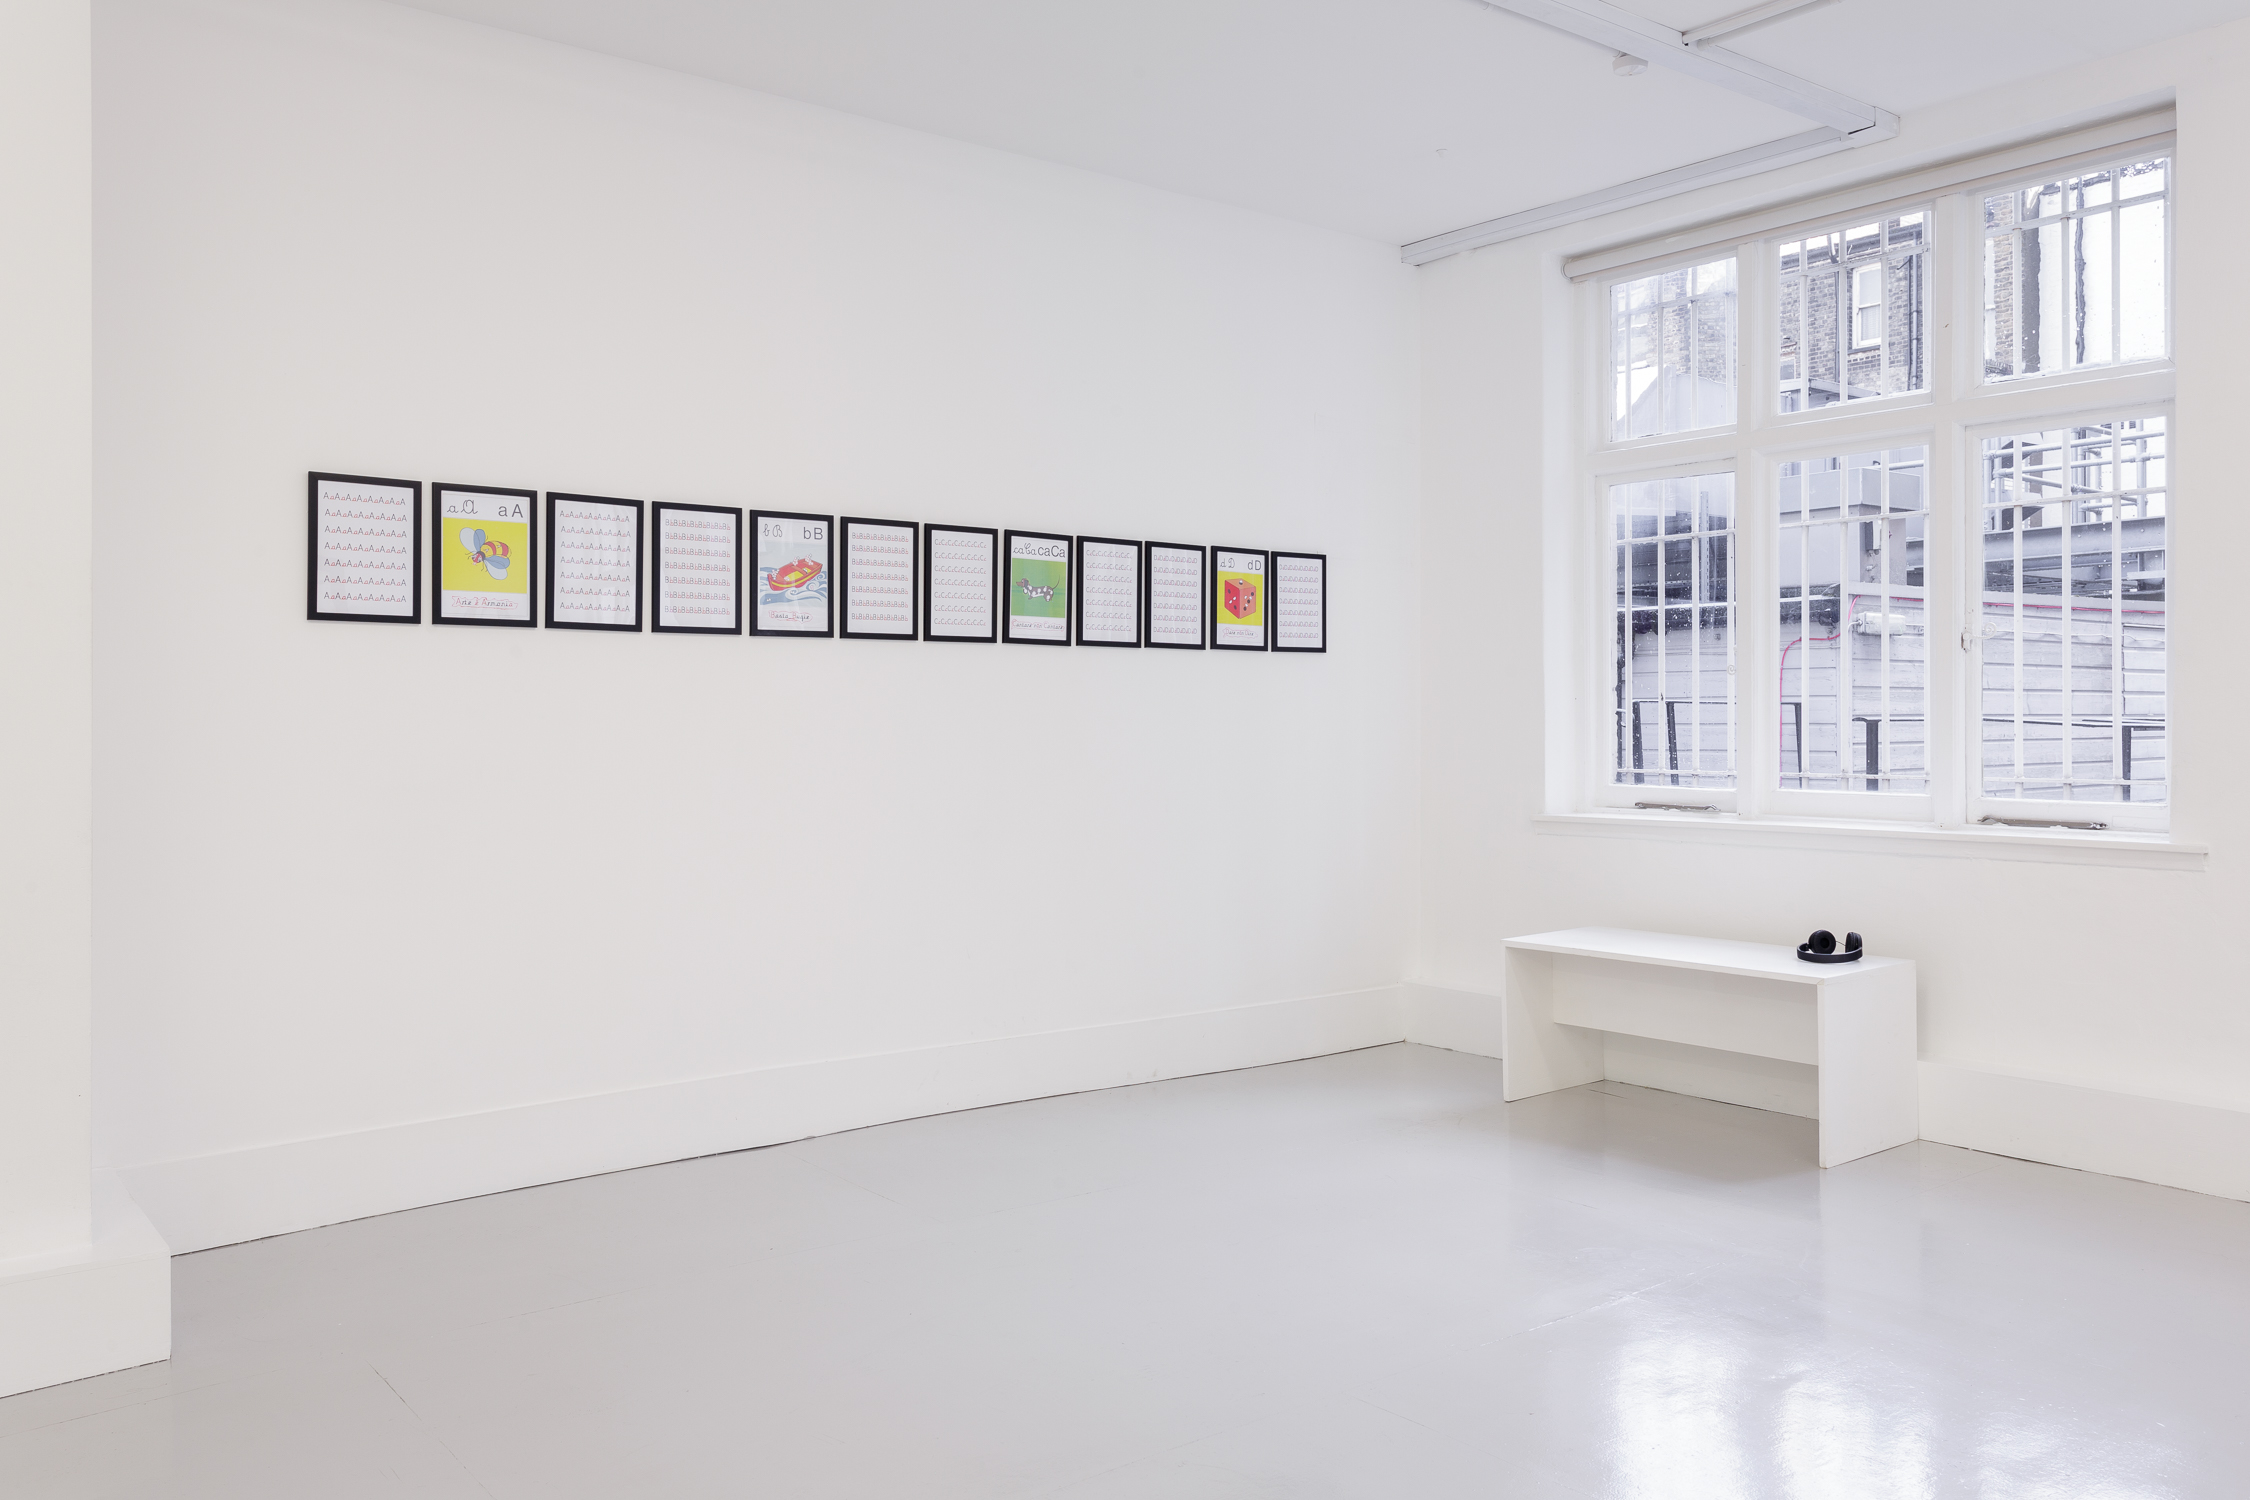 Tomaso Binga, A Silenced Victory, installation view. Photo: Katarzyna Perlak @bothslashand